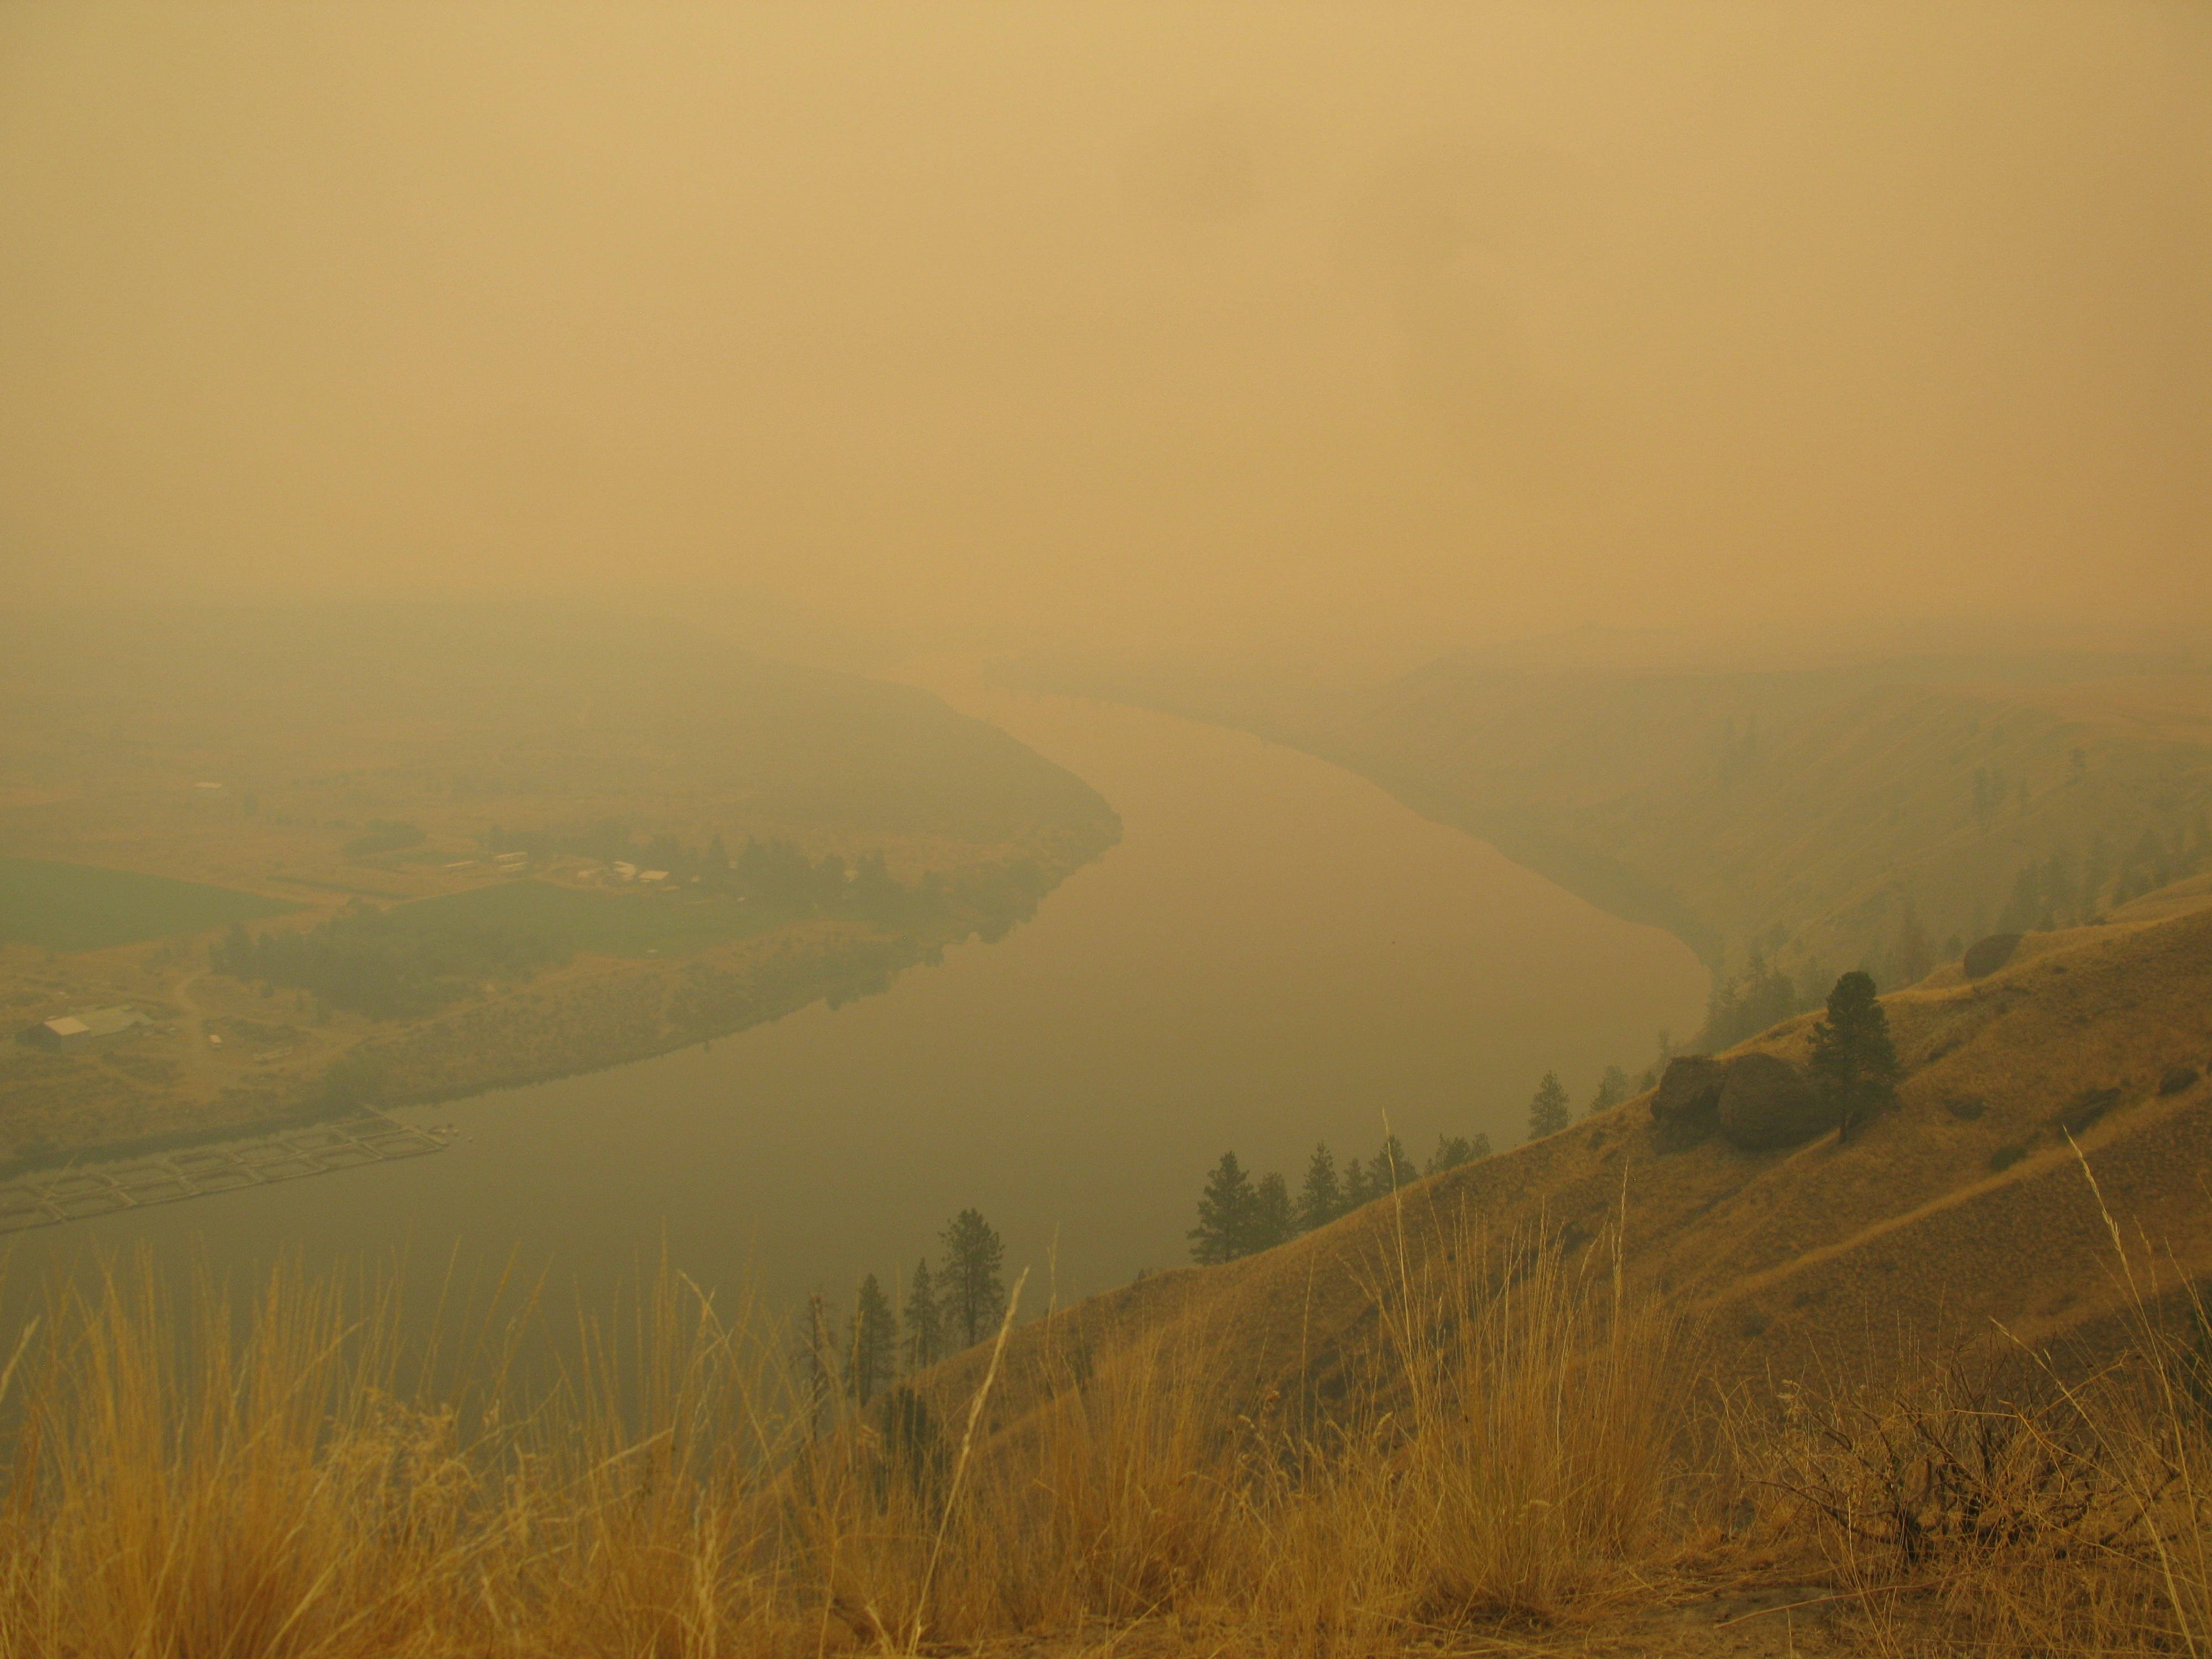 The Columbia River Tour has been cancelled today due to smokey conditions...